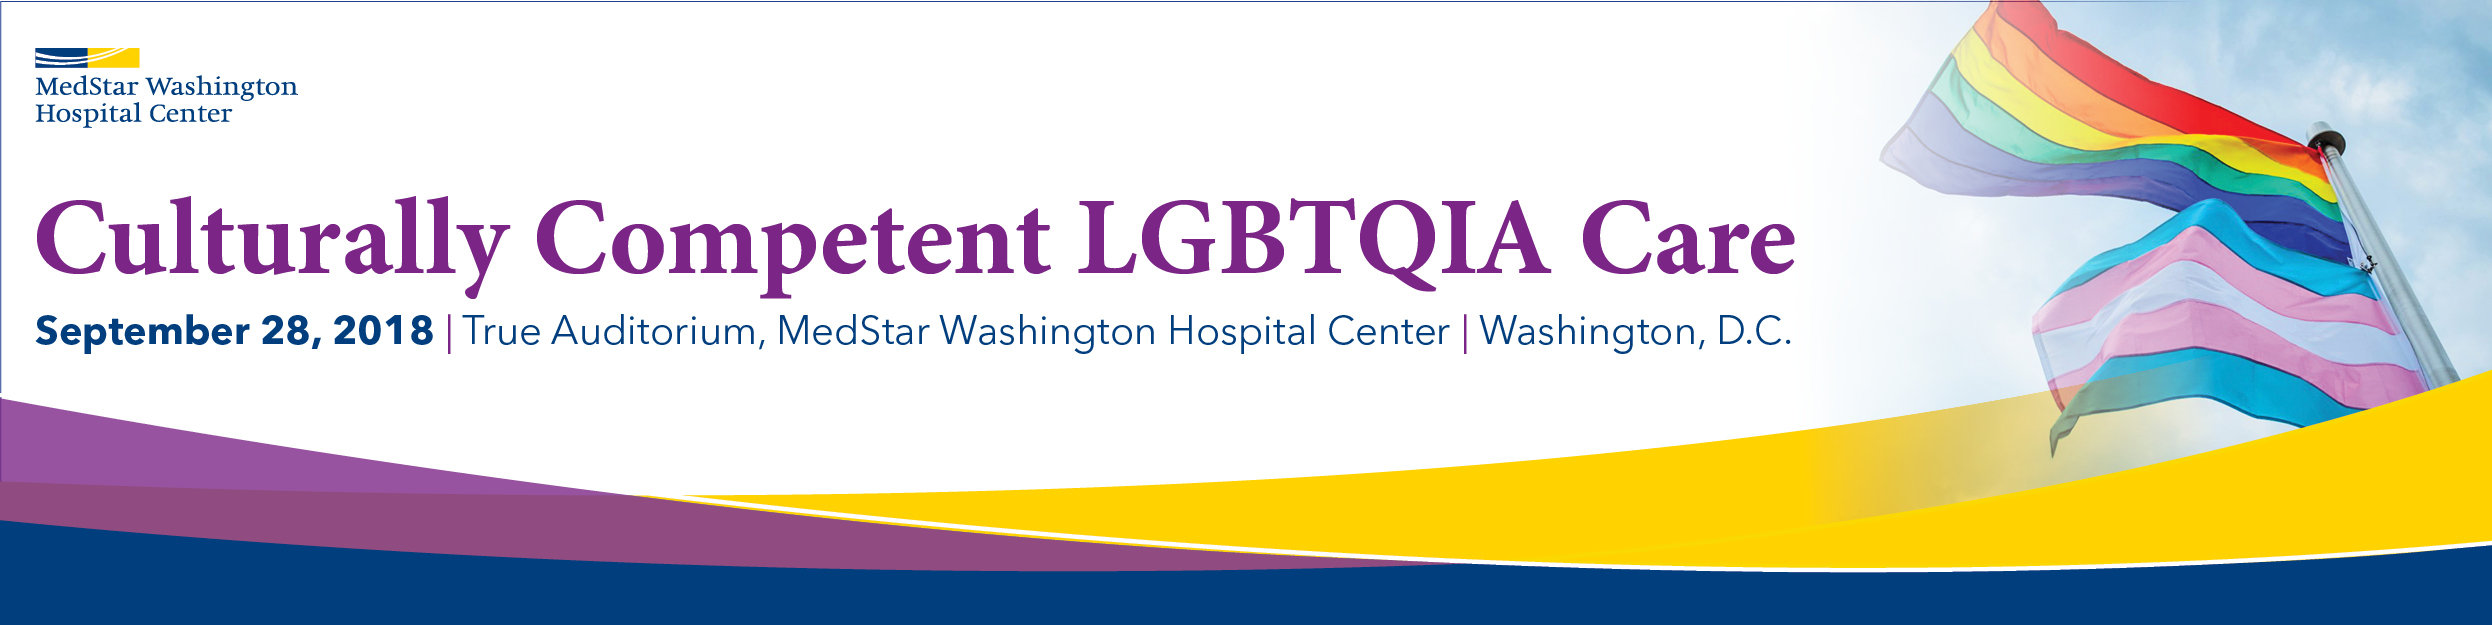 Culturally Competent LGBTQIA Care - Internet Enduring Material 2018-2019 Banner